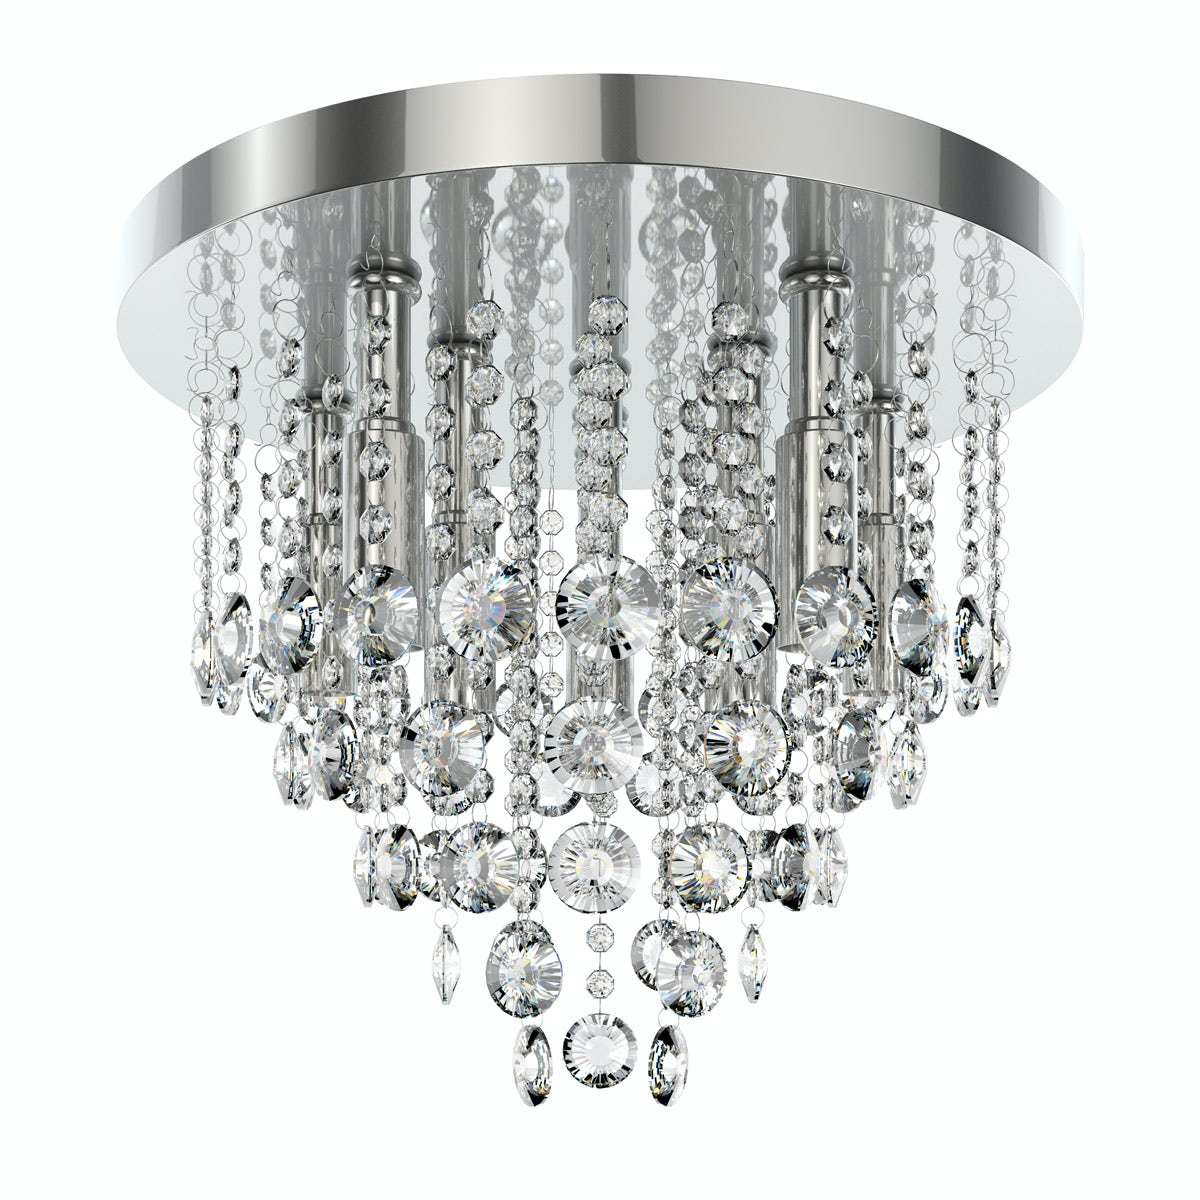 Ceiling Light Offers: Forum Lenah 380mm Flush Bathroom Ceiling Light